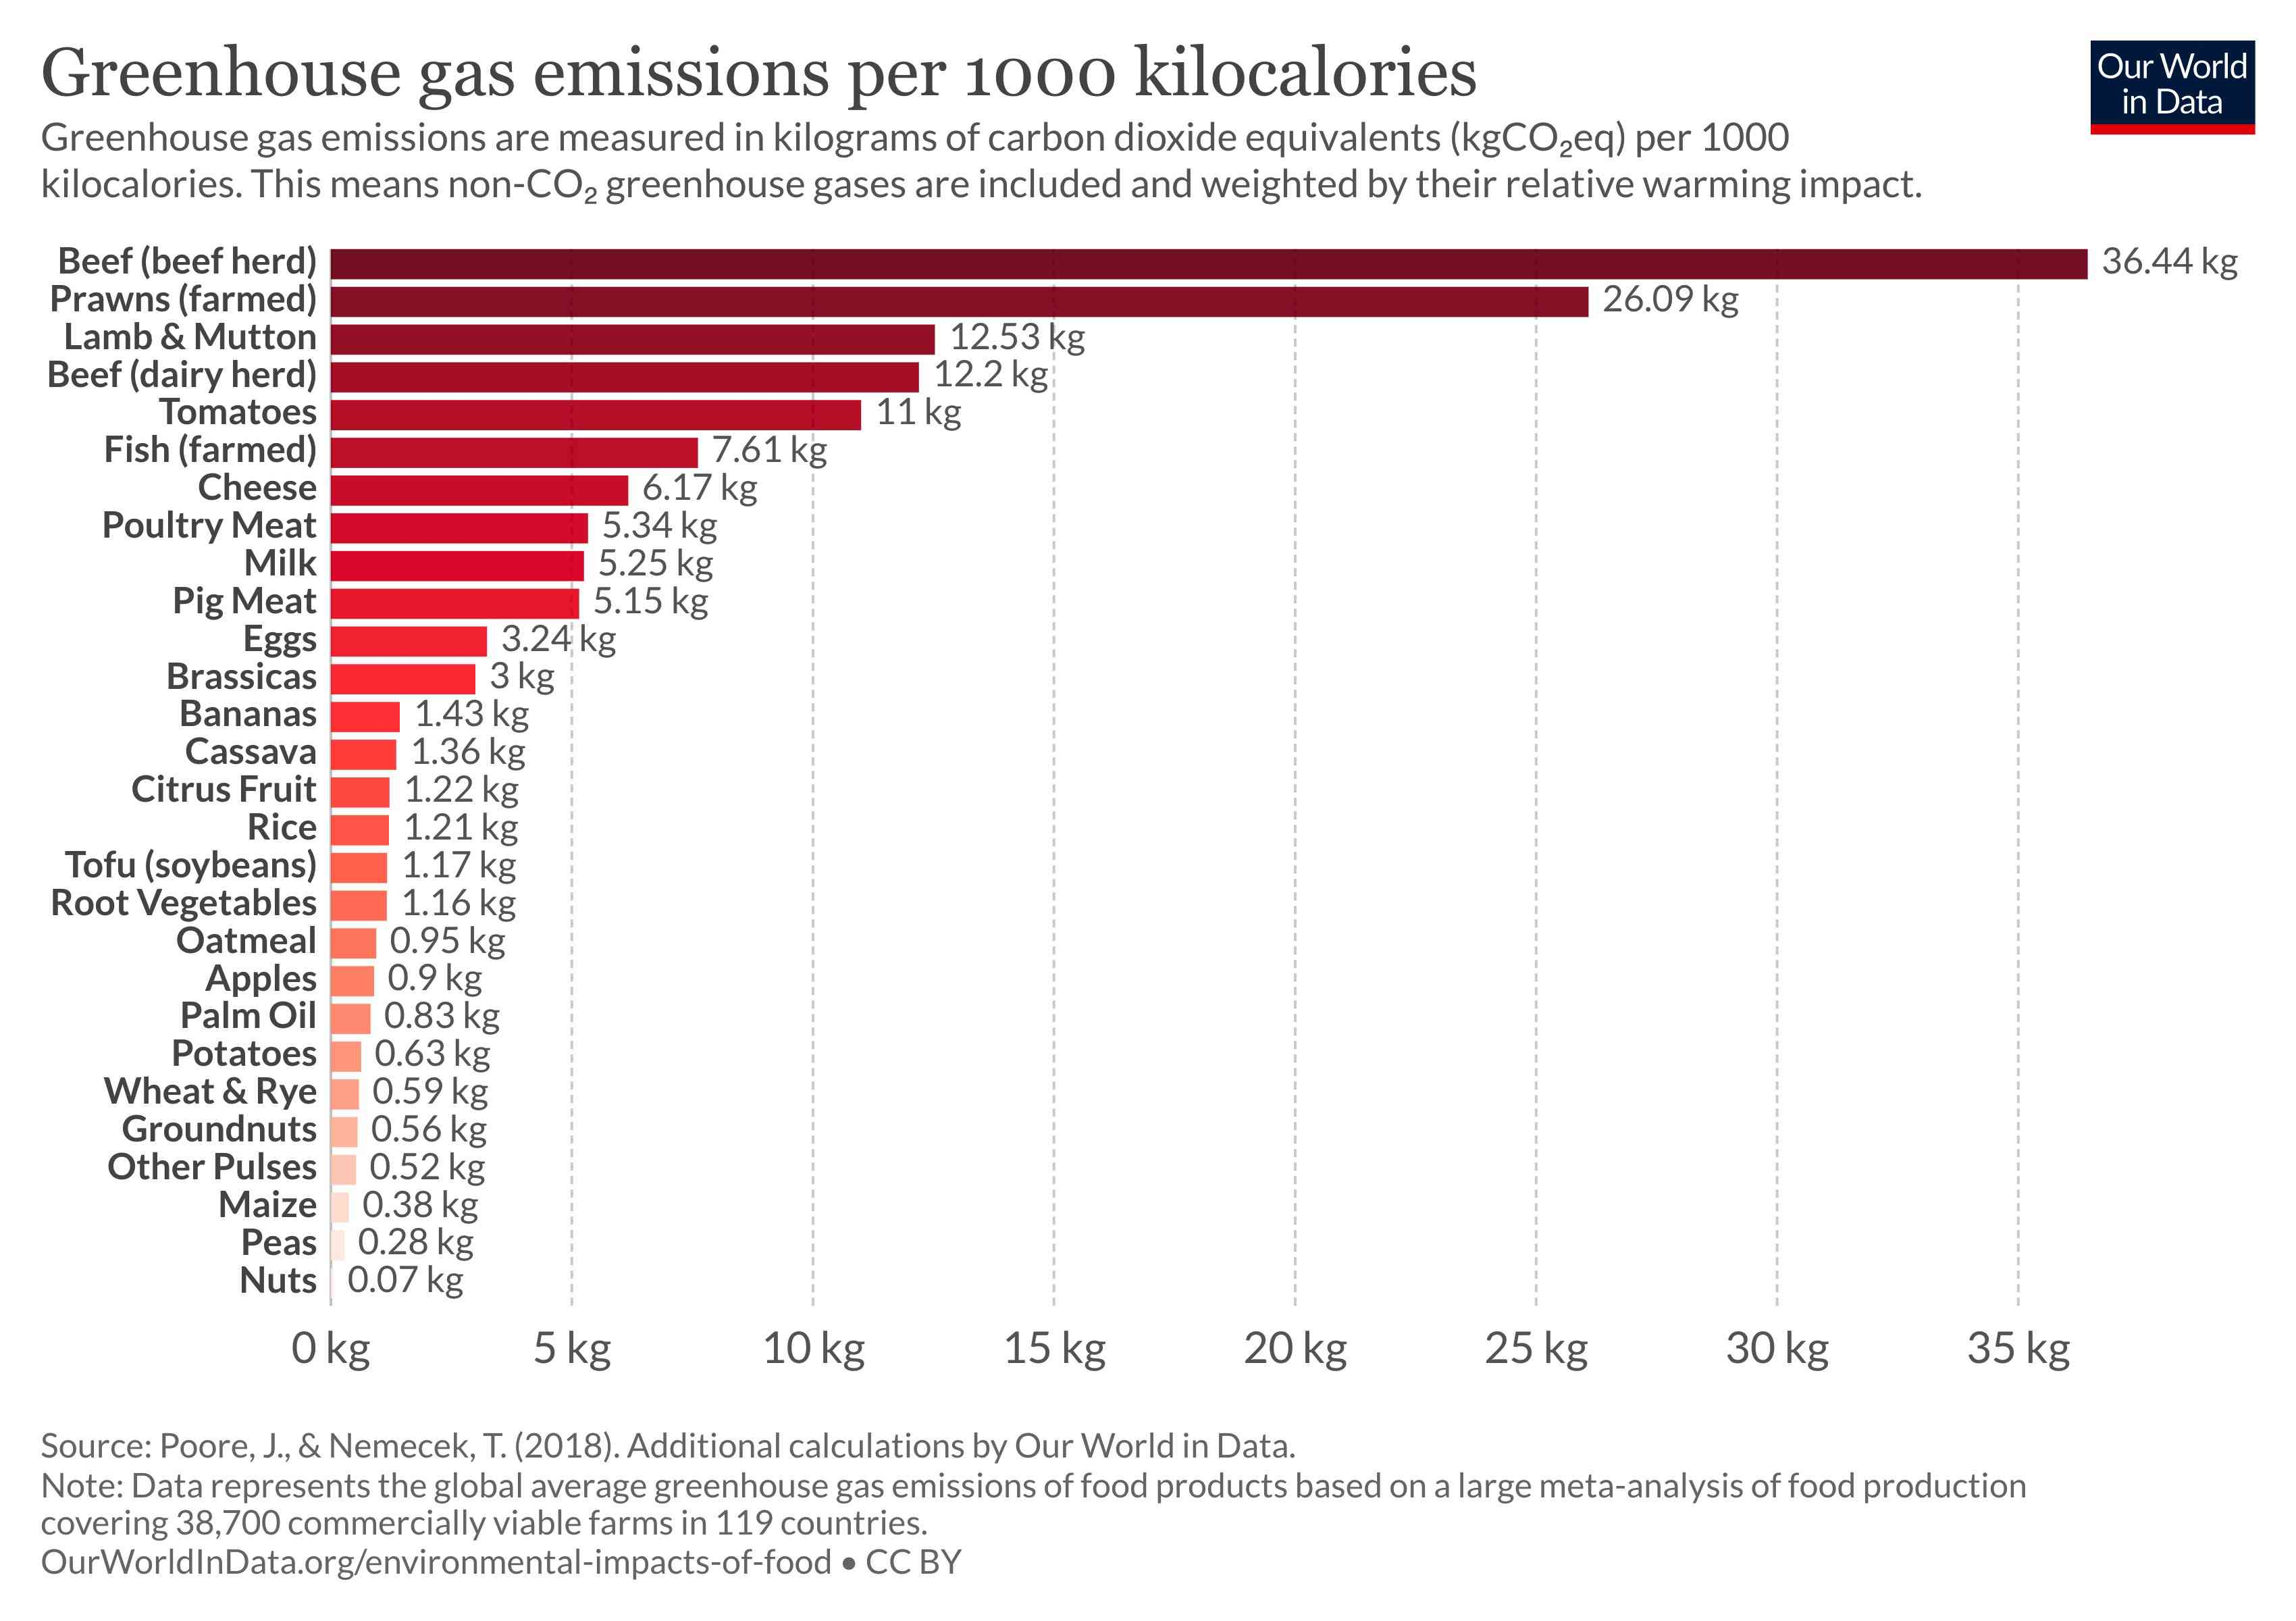 Greenhouse gases from food